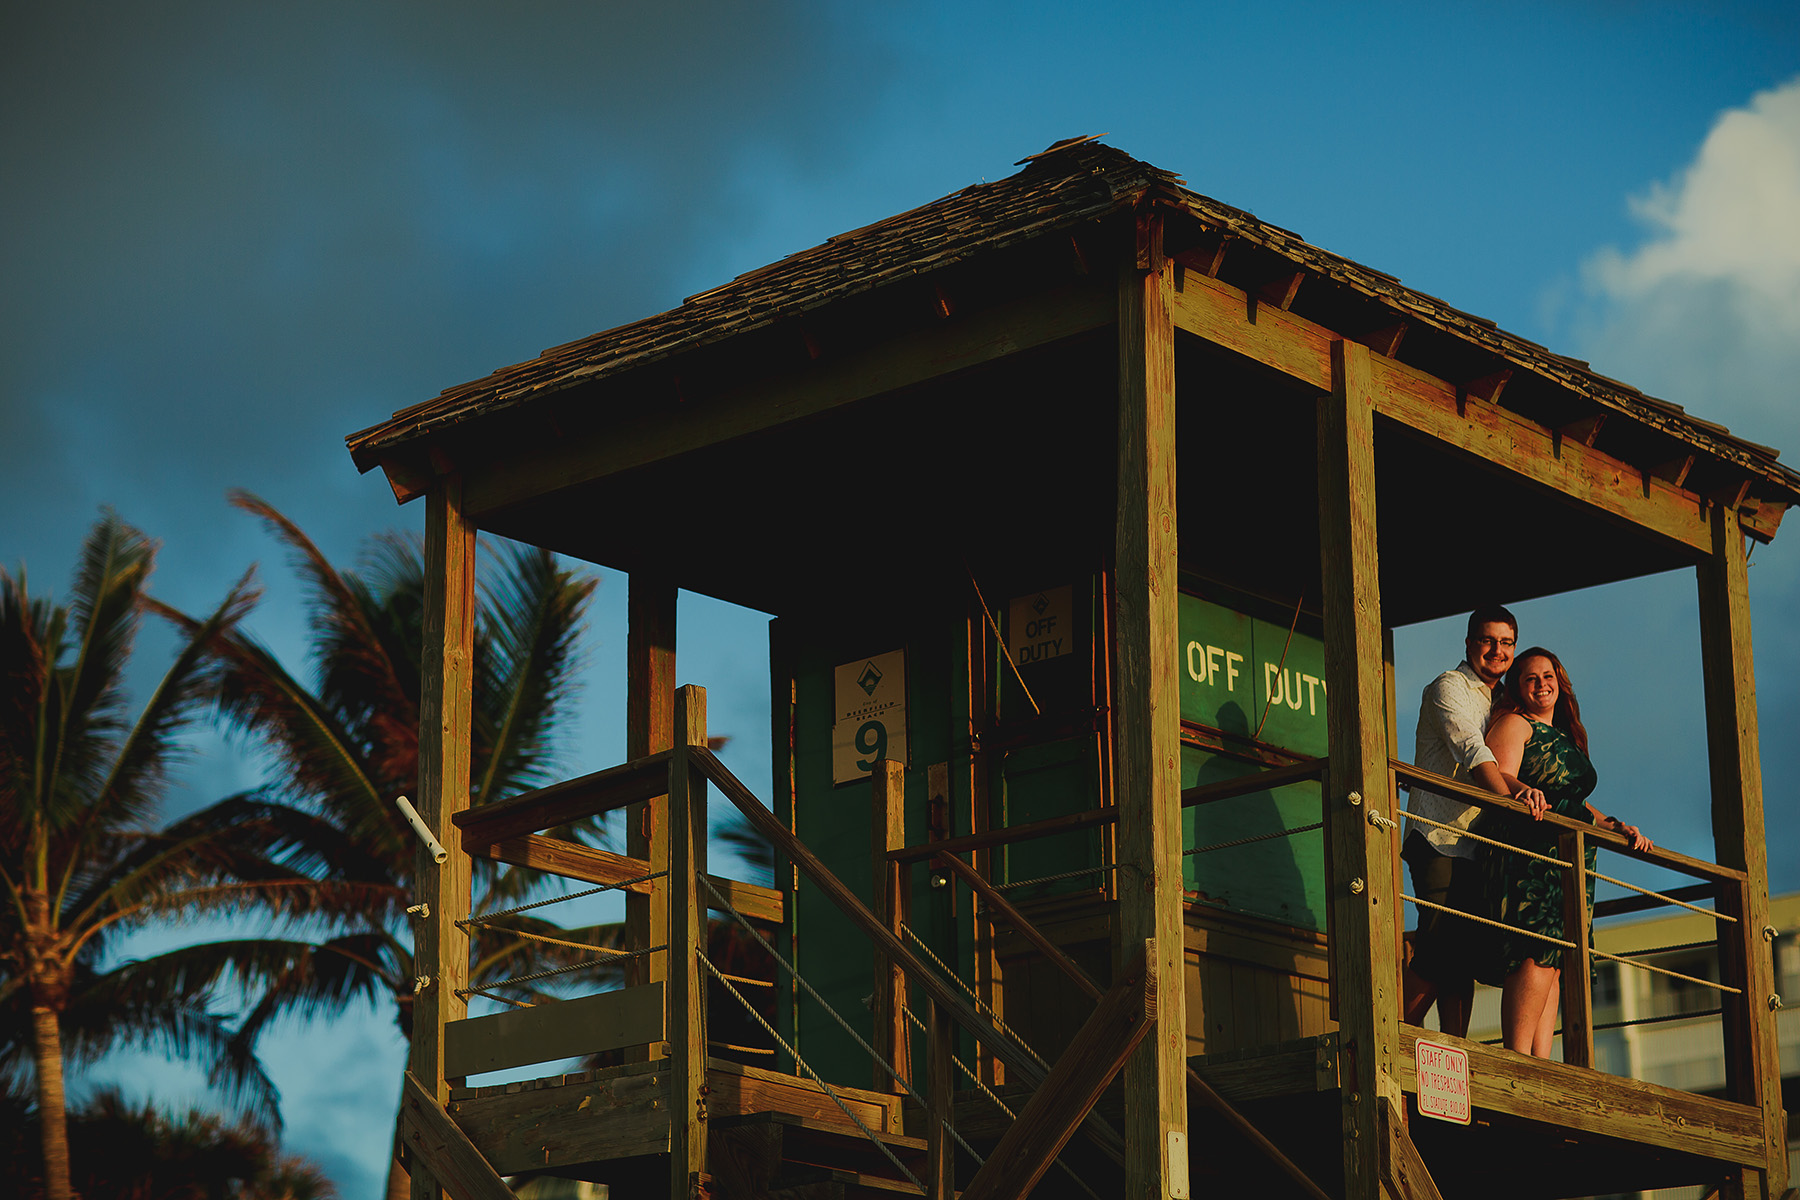 palm-trees-salty-couple-in-love-tiny-house-photo.jpg